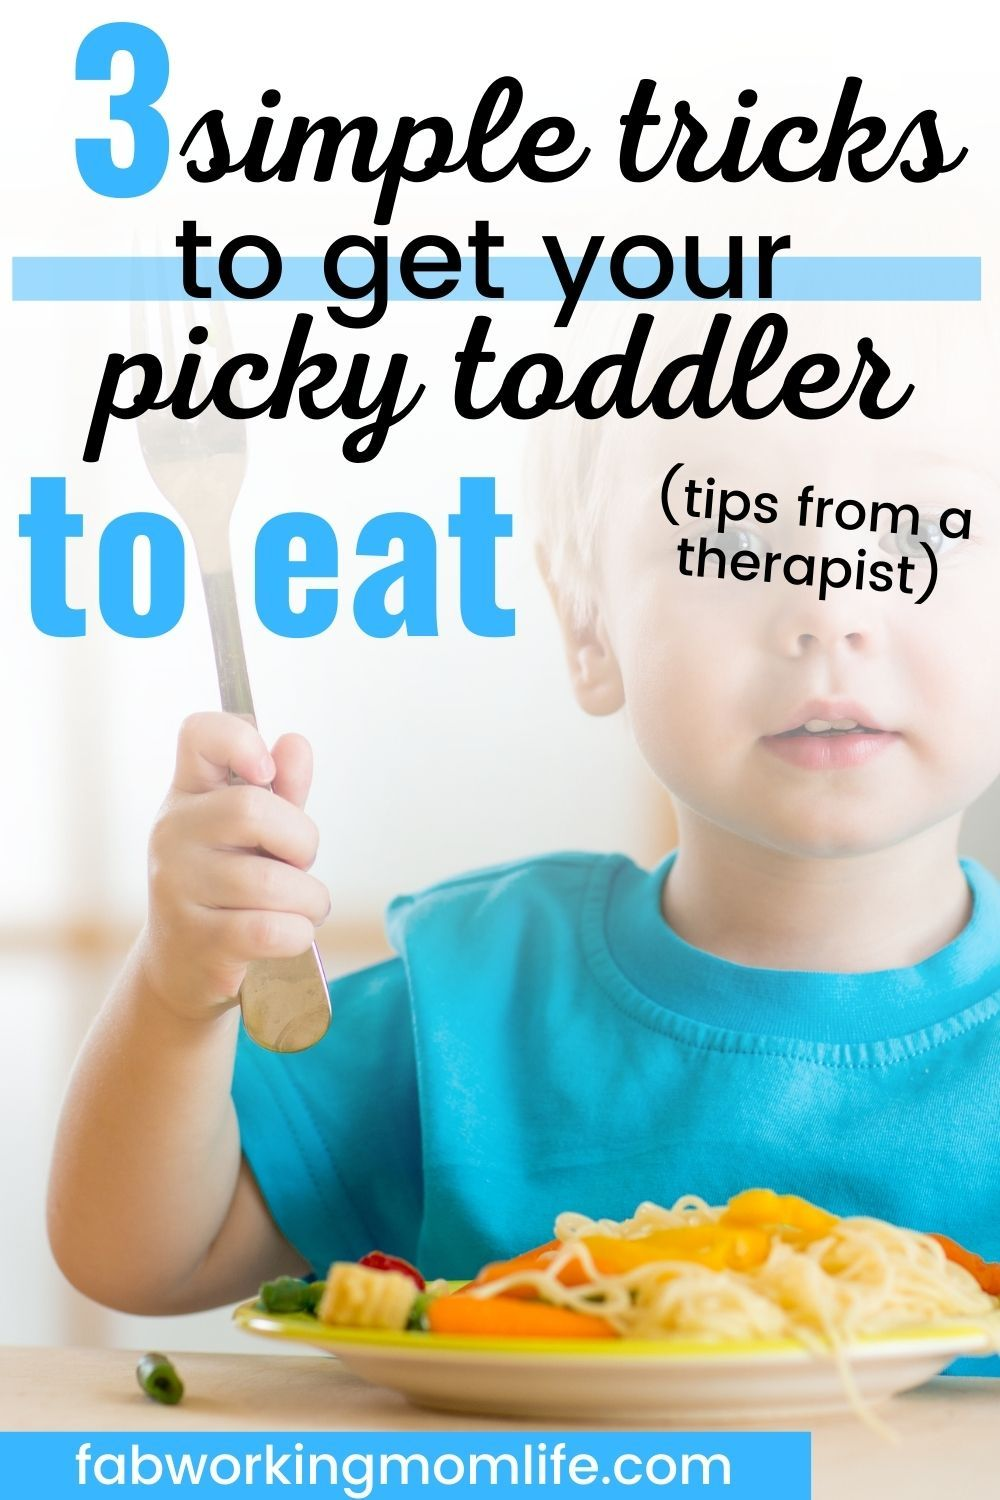 c3dee5f0486fd607367252aa0cc9b2c7 - How To Get My Picky Eater To Try New Foods